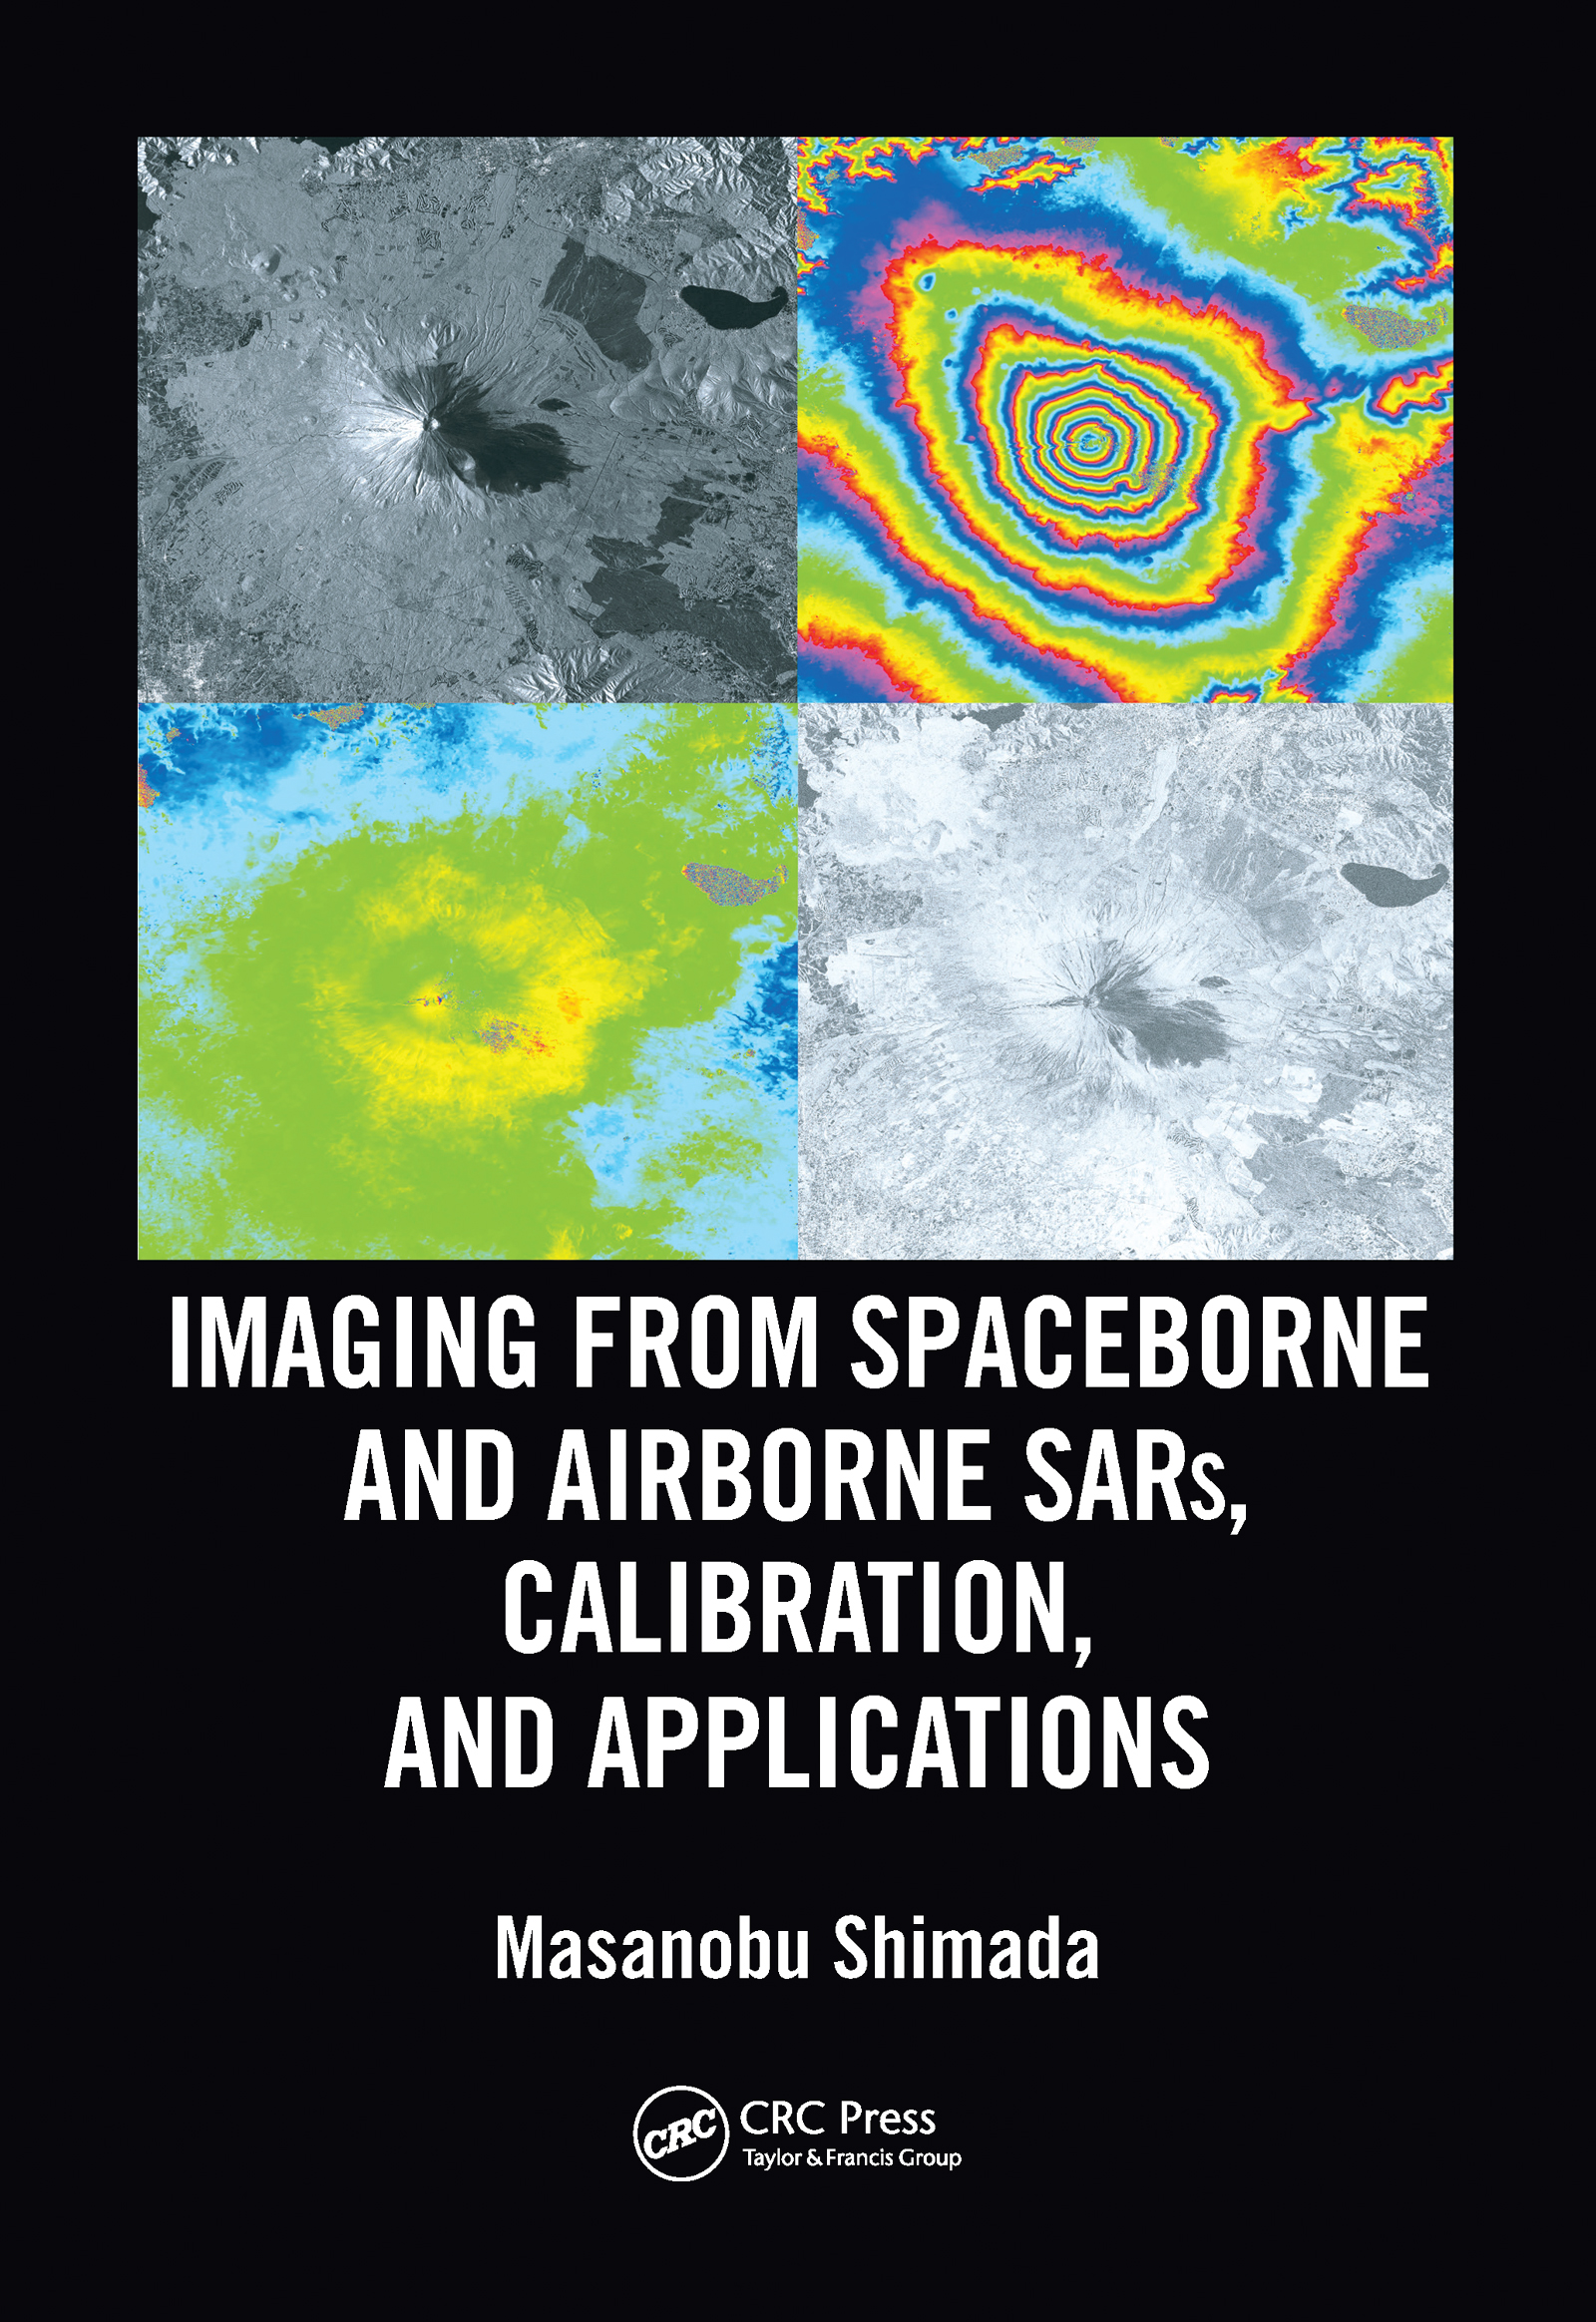 Imaging from Spaceborne and Airborne SARs, Calibration, and Applications